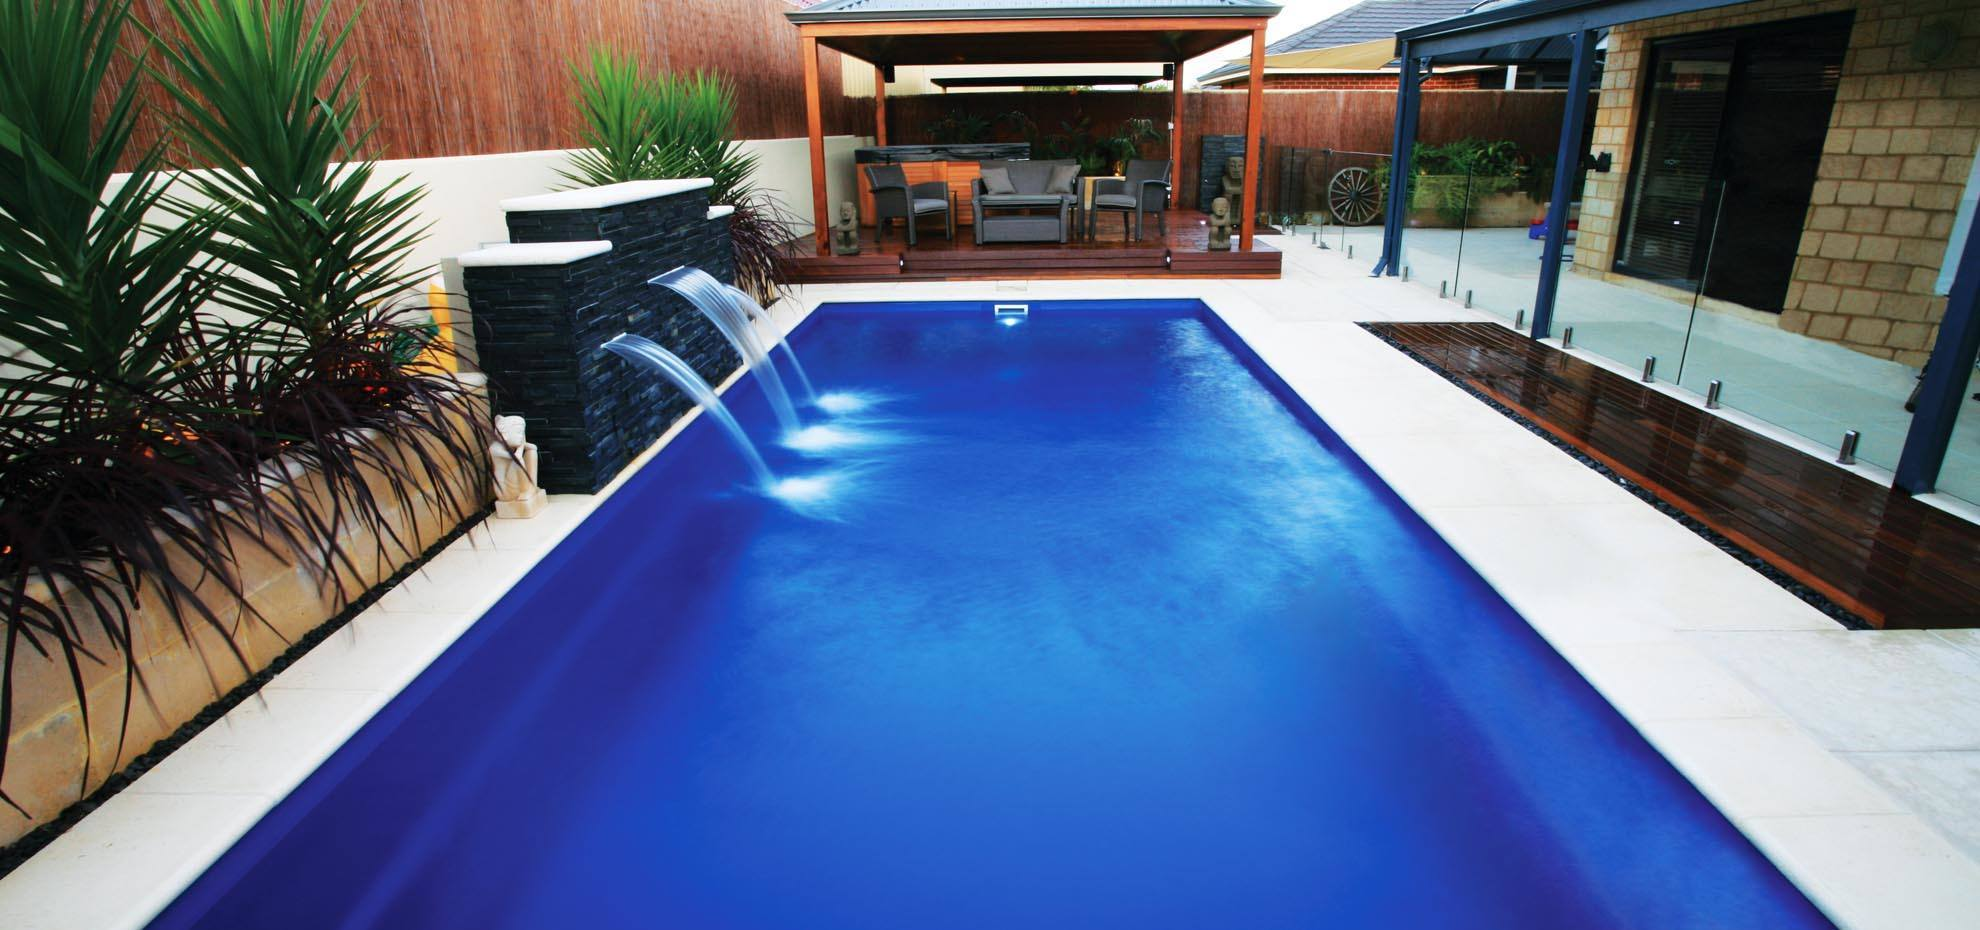 The Reflection Fibreglass pool with coping, pergola and water feature by Leisure Pools